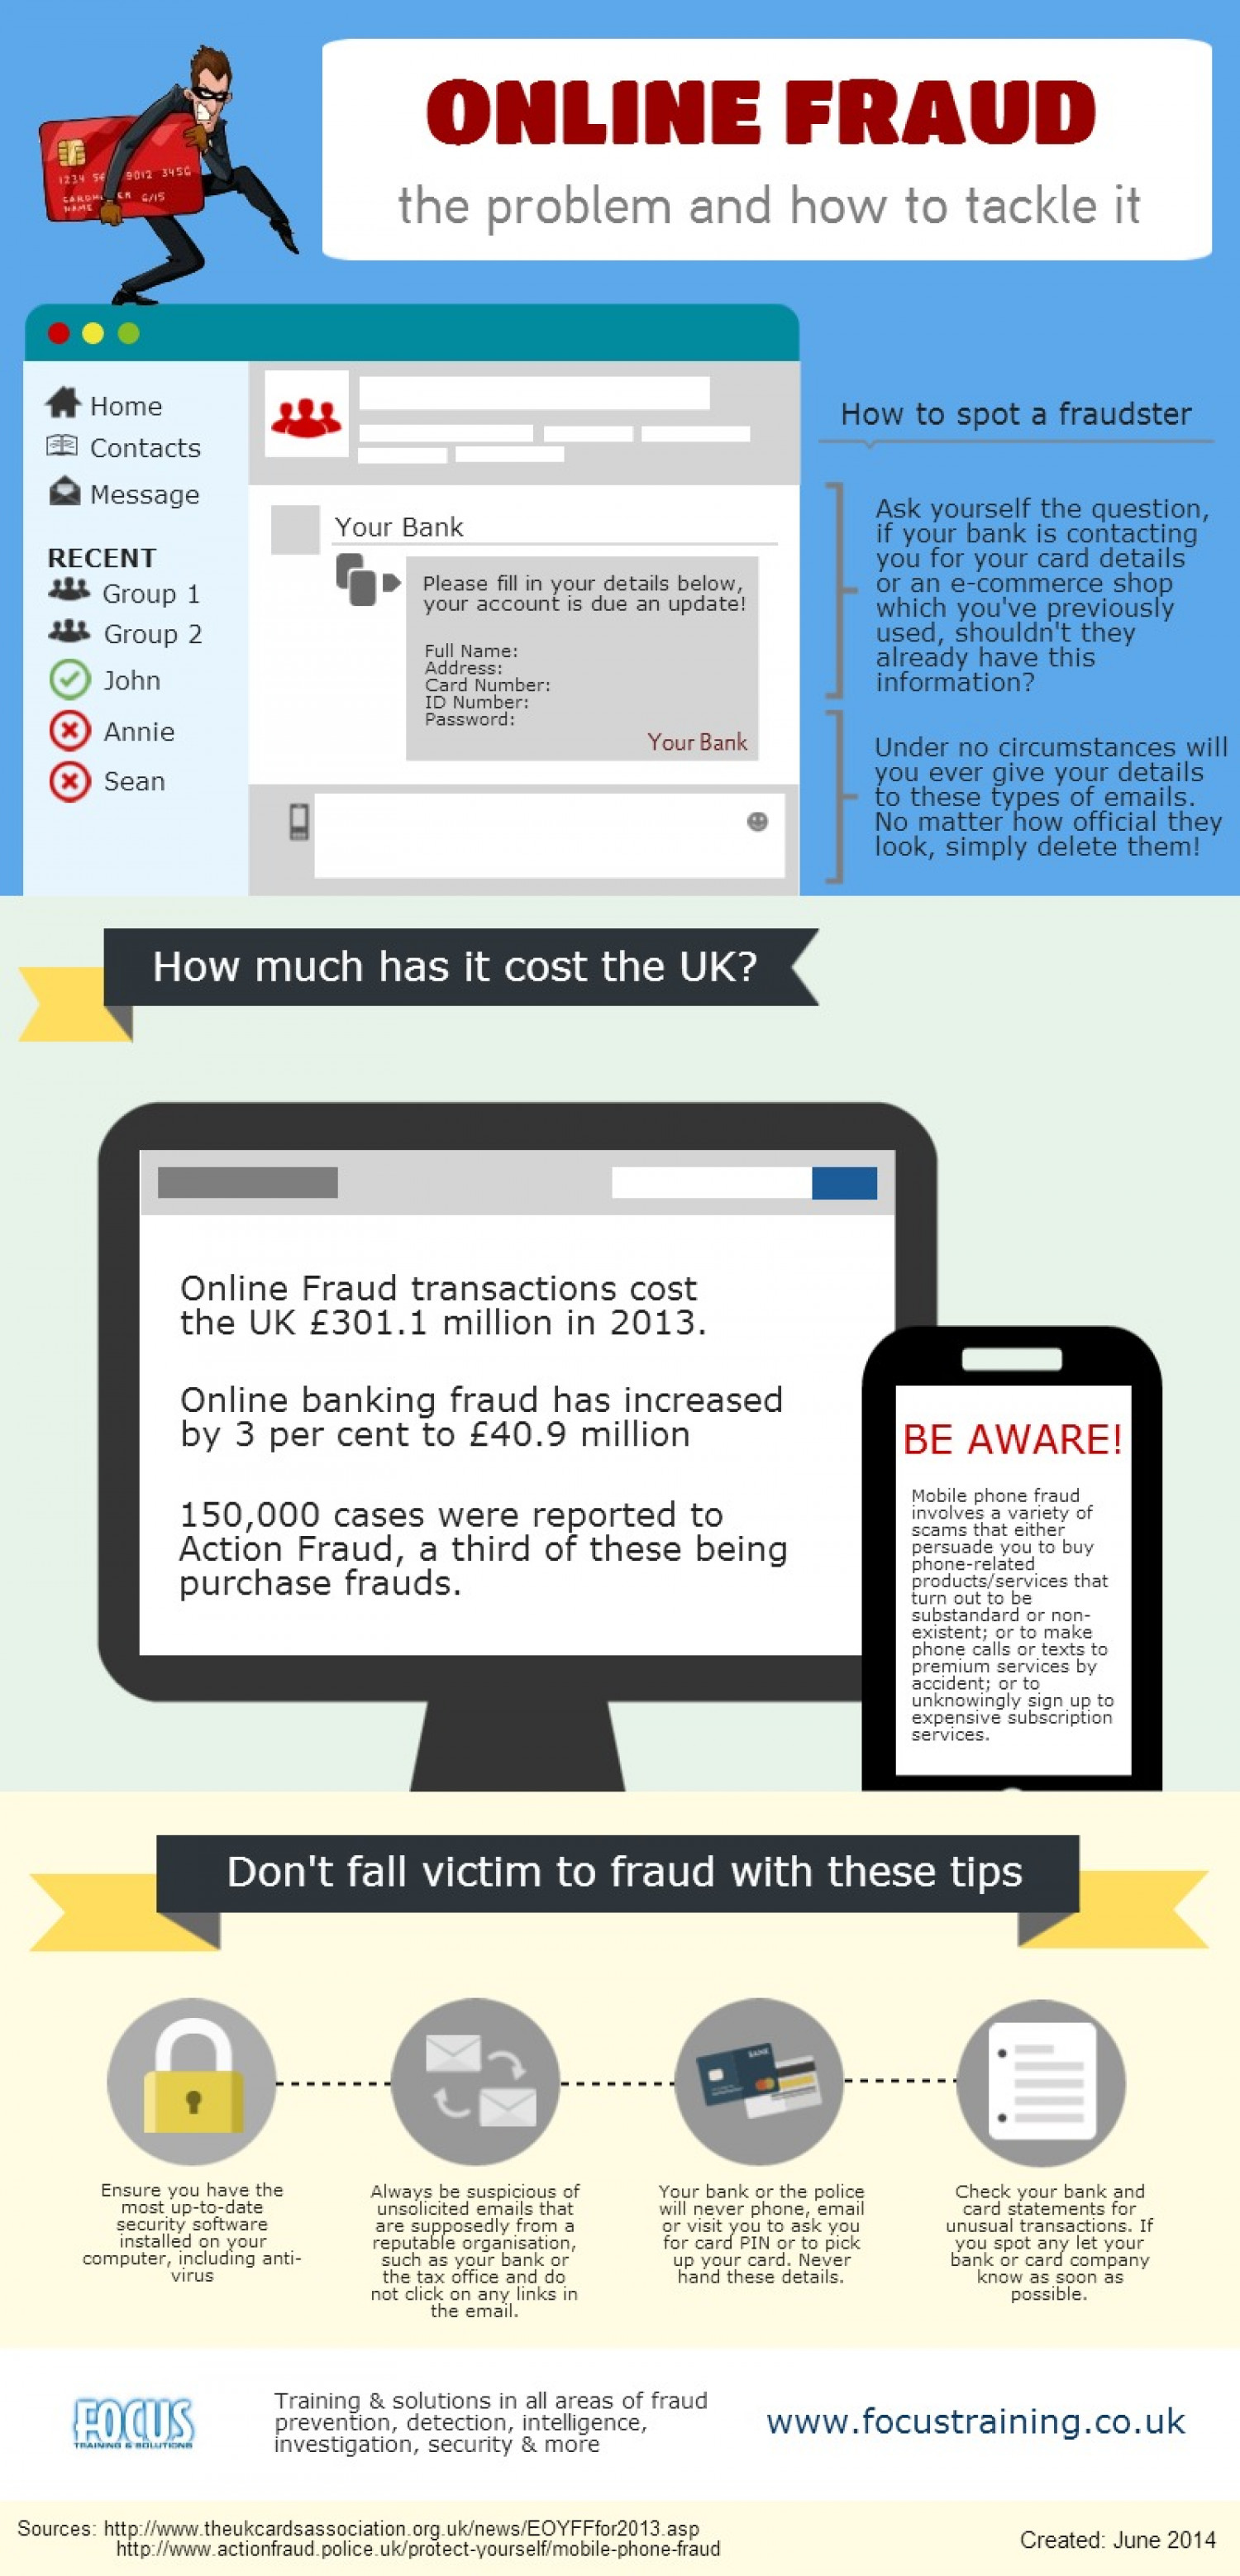 Online Fraud: The Problem and How to Tackle it Infographic